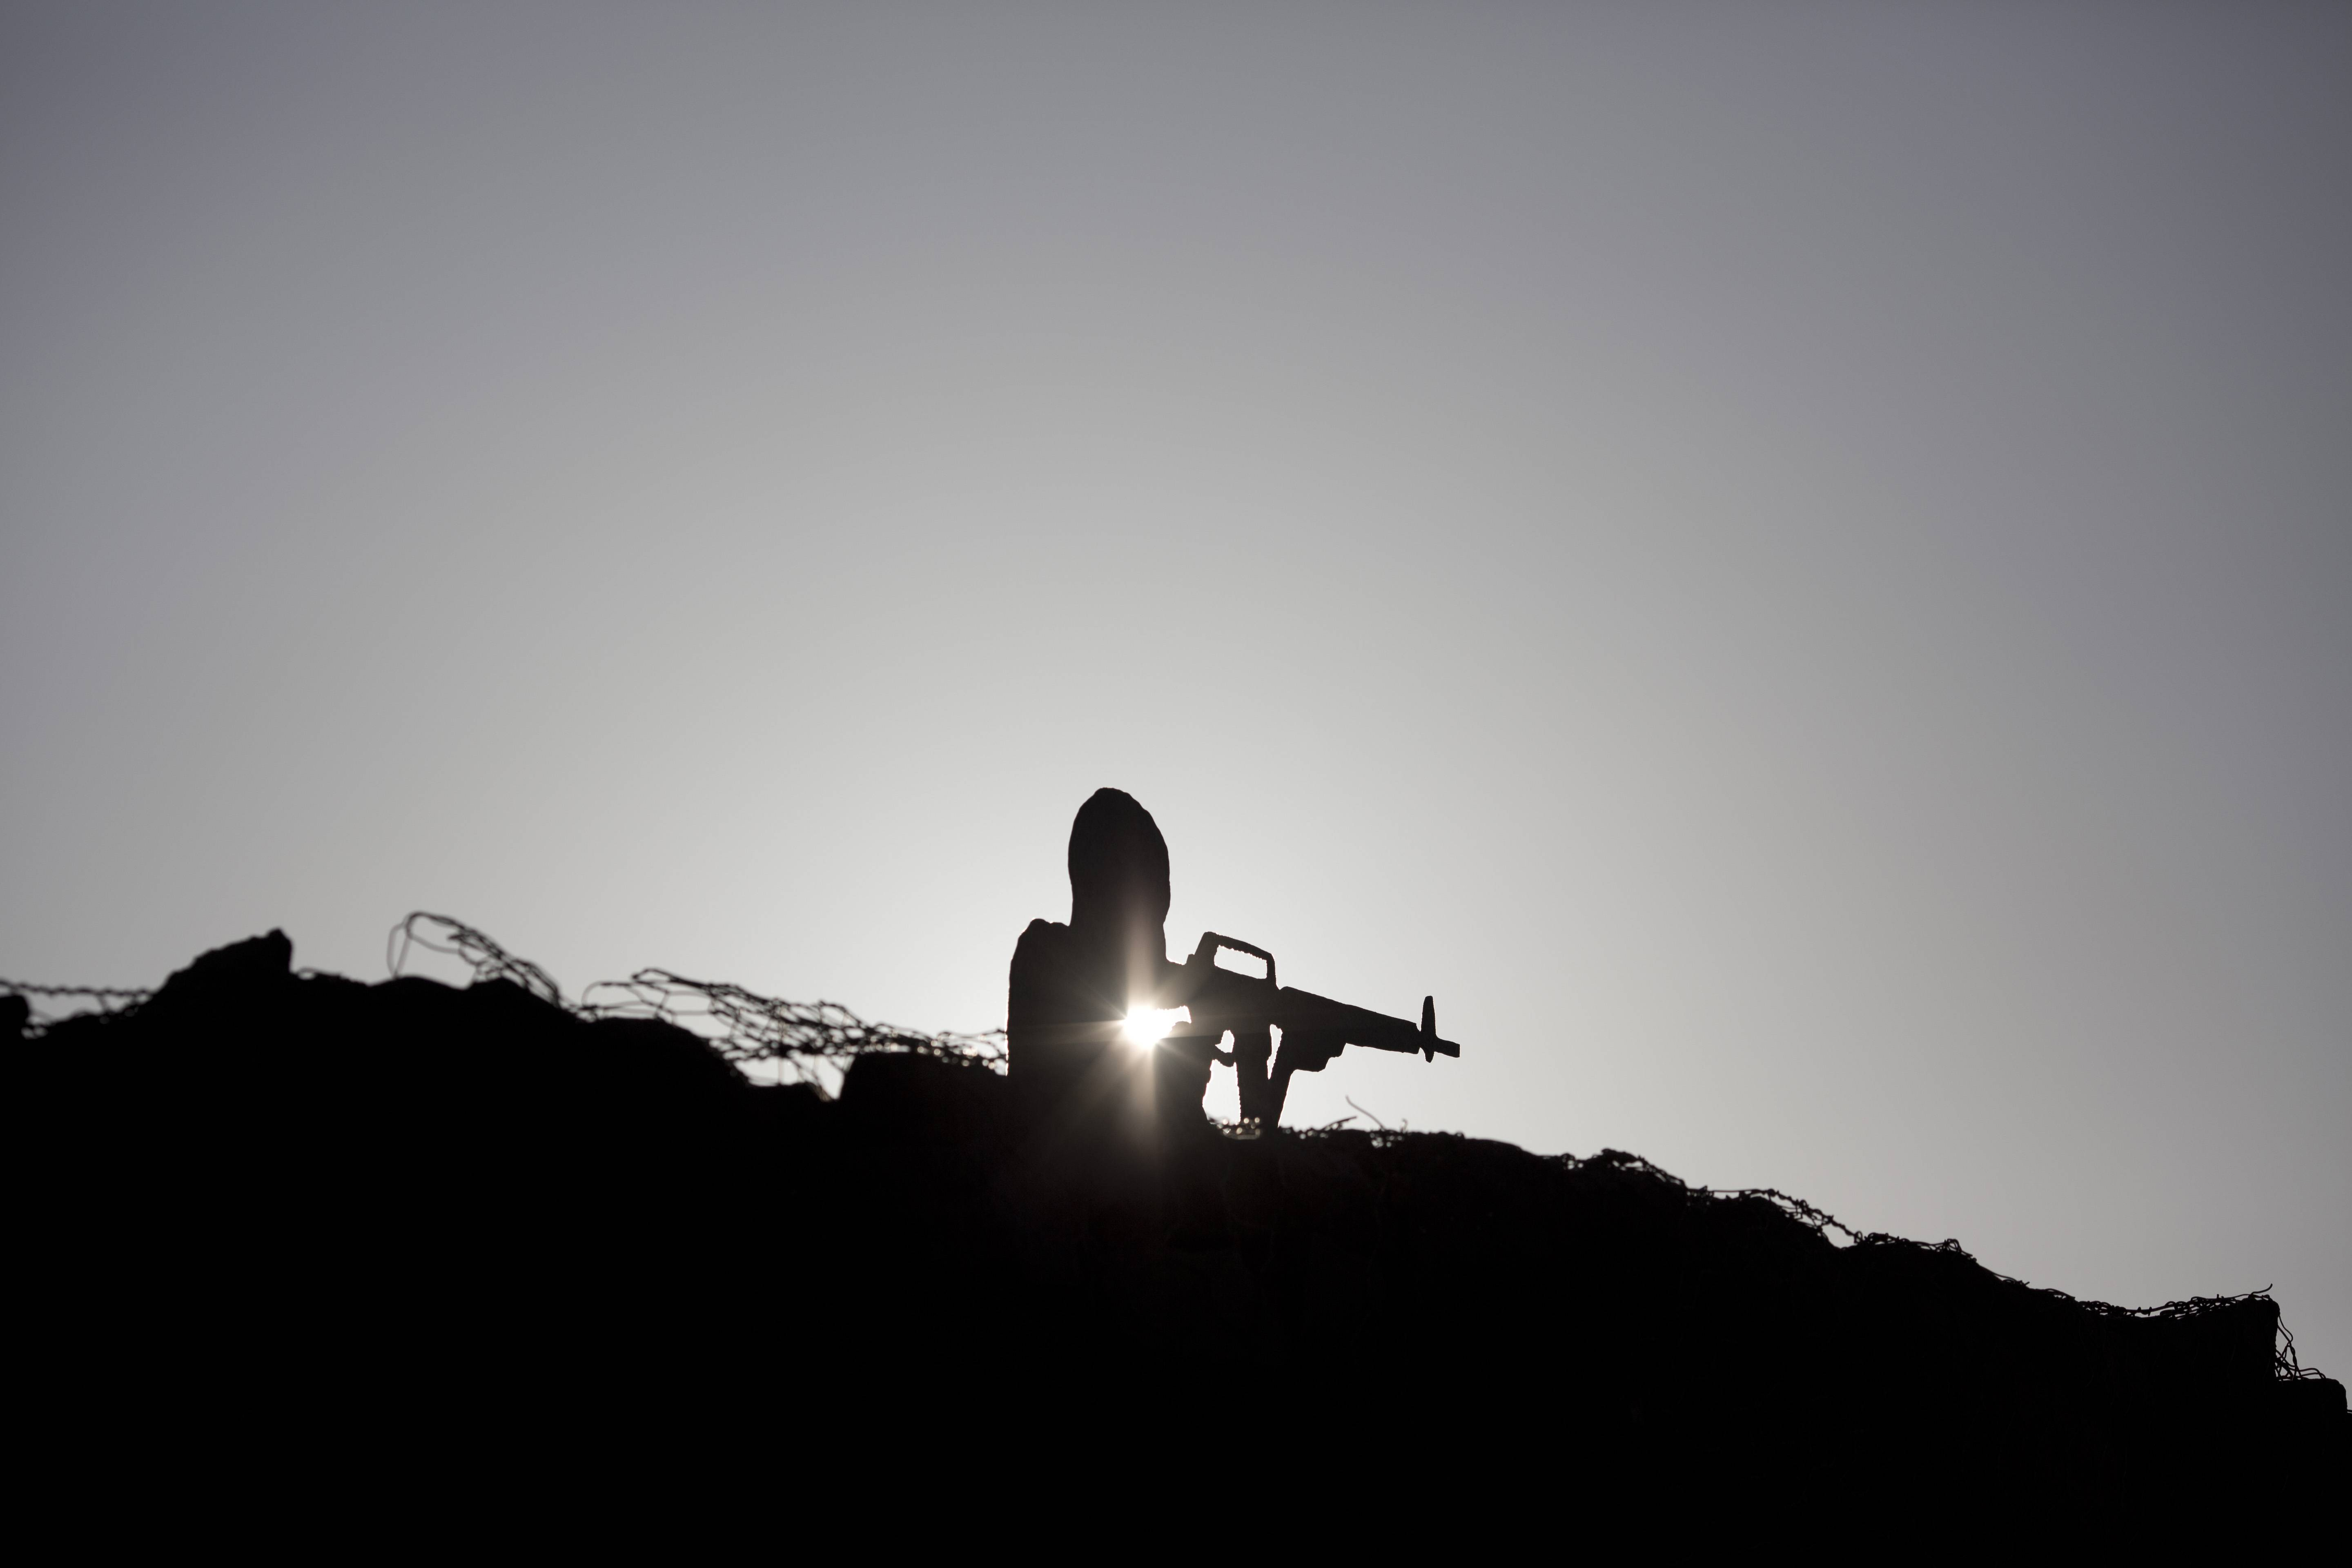 A metal board in the shape of a gunman sits on an old bunker at an observation point on Mt. Bental in the Israeli-controlled Golan Heights, overlooking the border with Syria Syria's Quneitra province, Thursday. From the Israeli side of the de facto border, large clouds of smoke could be seen, as gunfire and explosions sounded in the distance. Israeli soldiers observed the fighting.